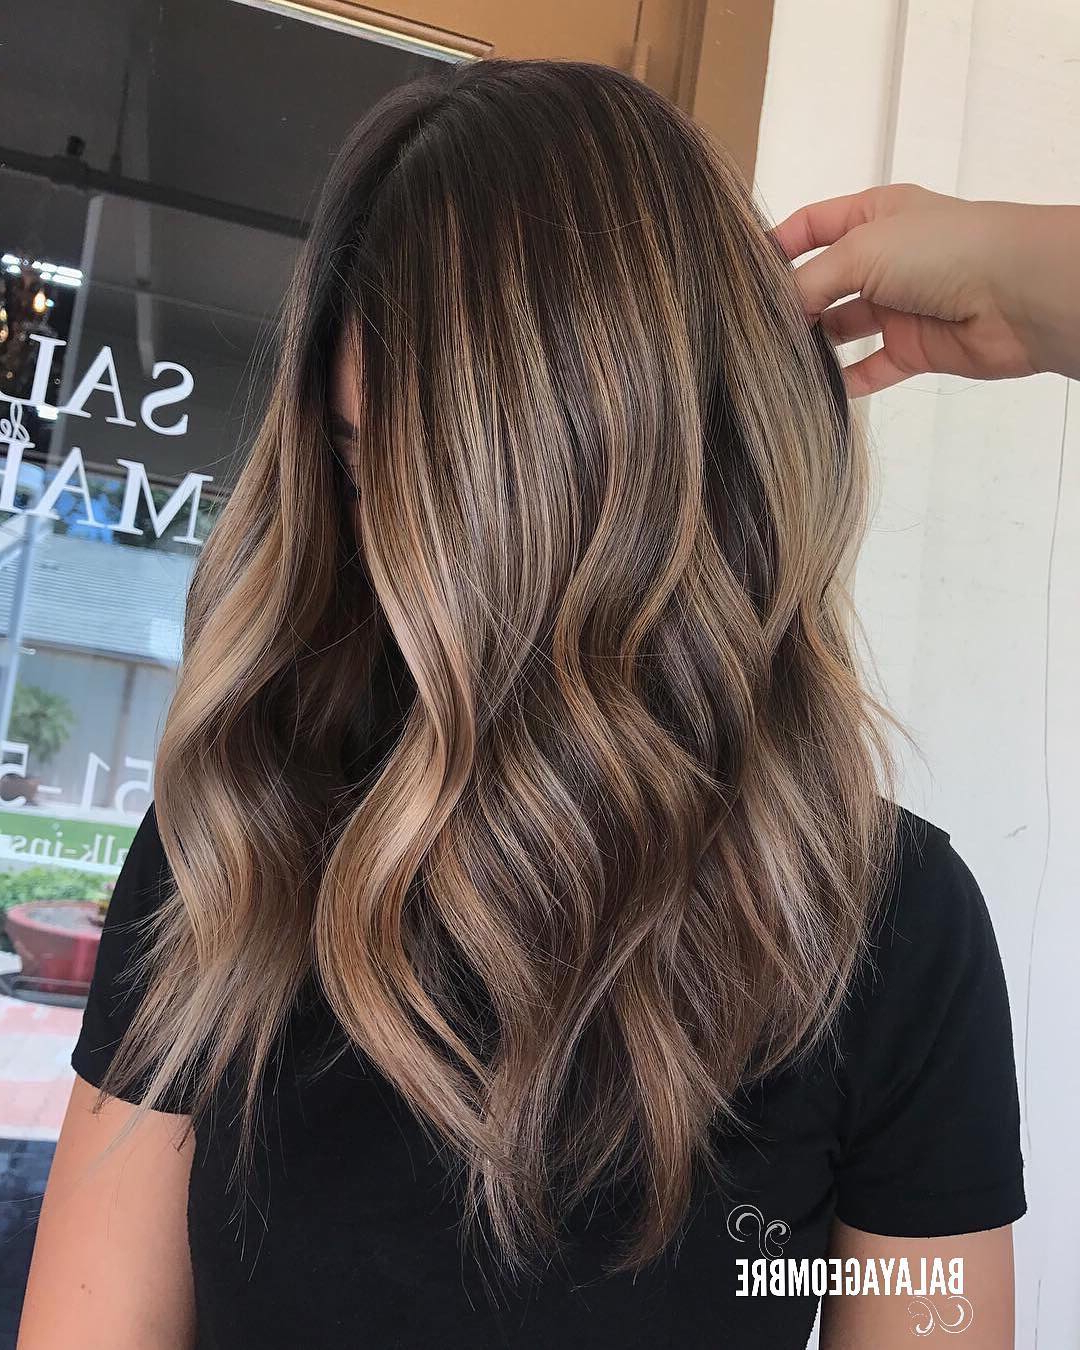 Most Recently Released Long Texture Revealing Layers Hairstyles With Regard To 10 Best Medium Layered Hairstyles 2019 – Brown & Ash Blonde Fashion (View 13 of 20)